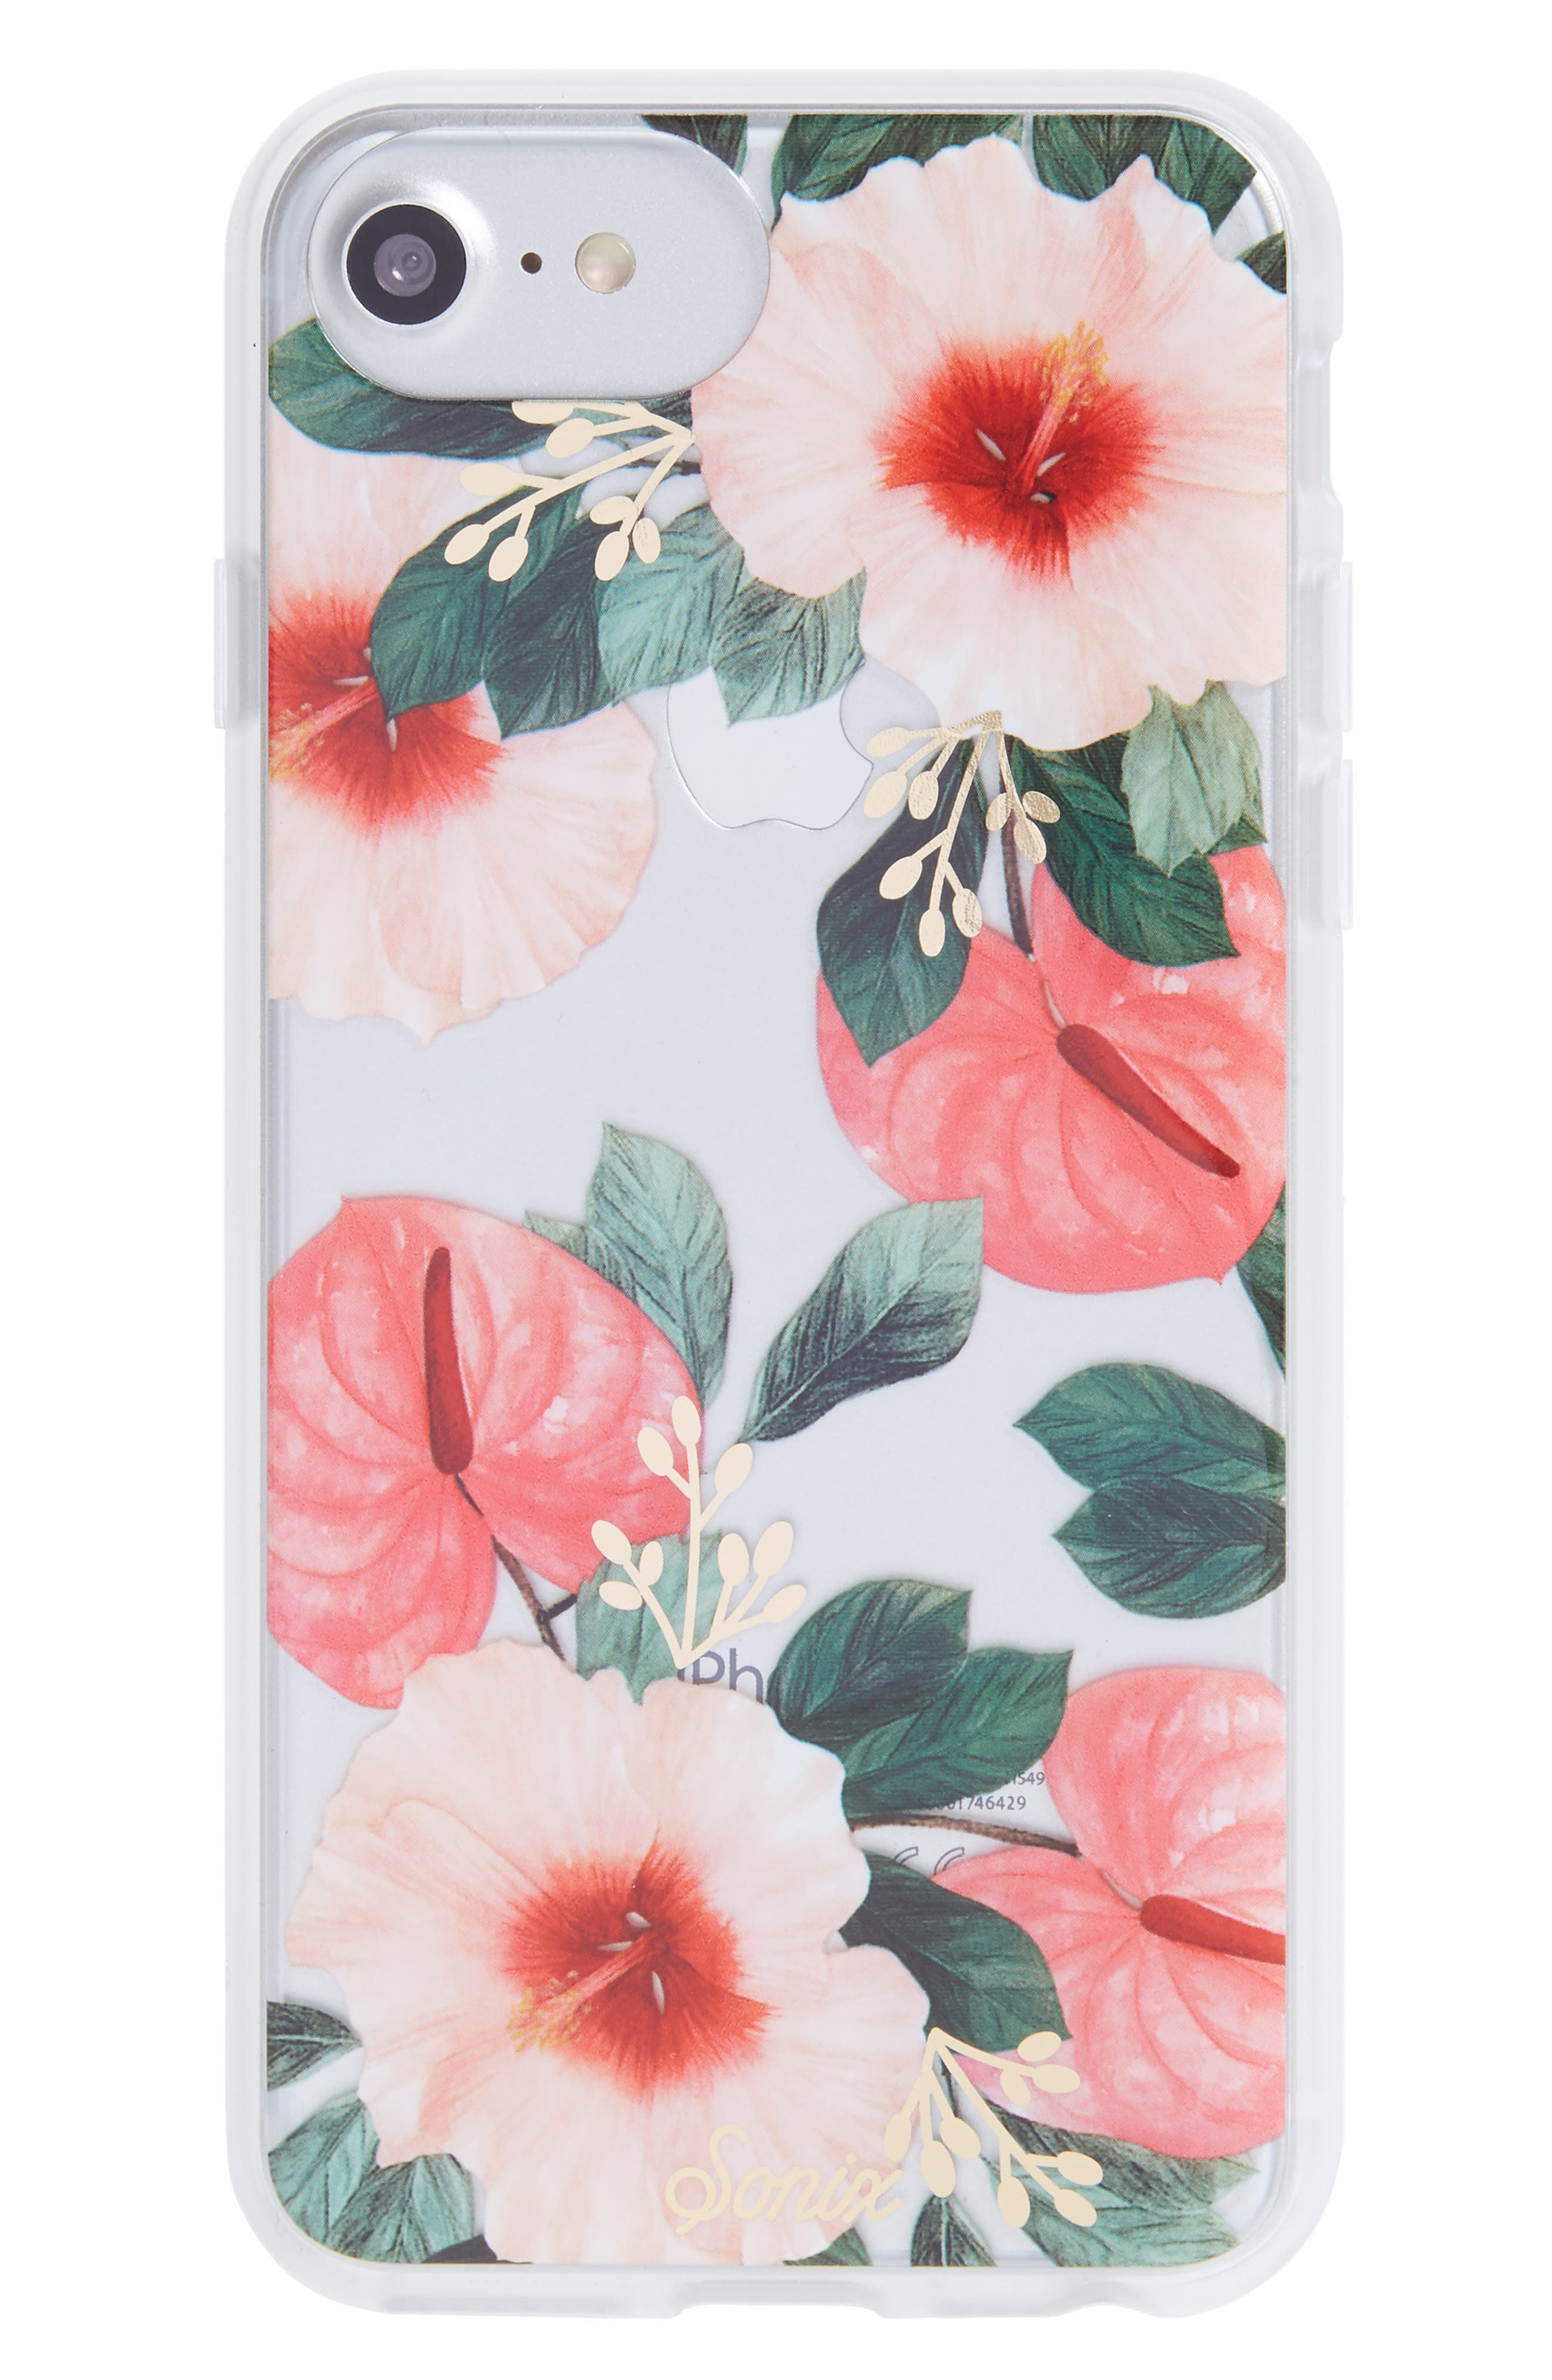 SONIX On Holiday iPhone 6/7 & 6/7 Plus Case